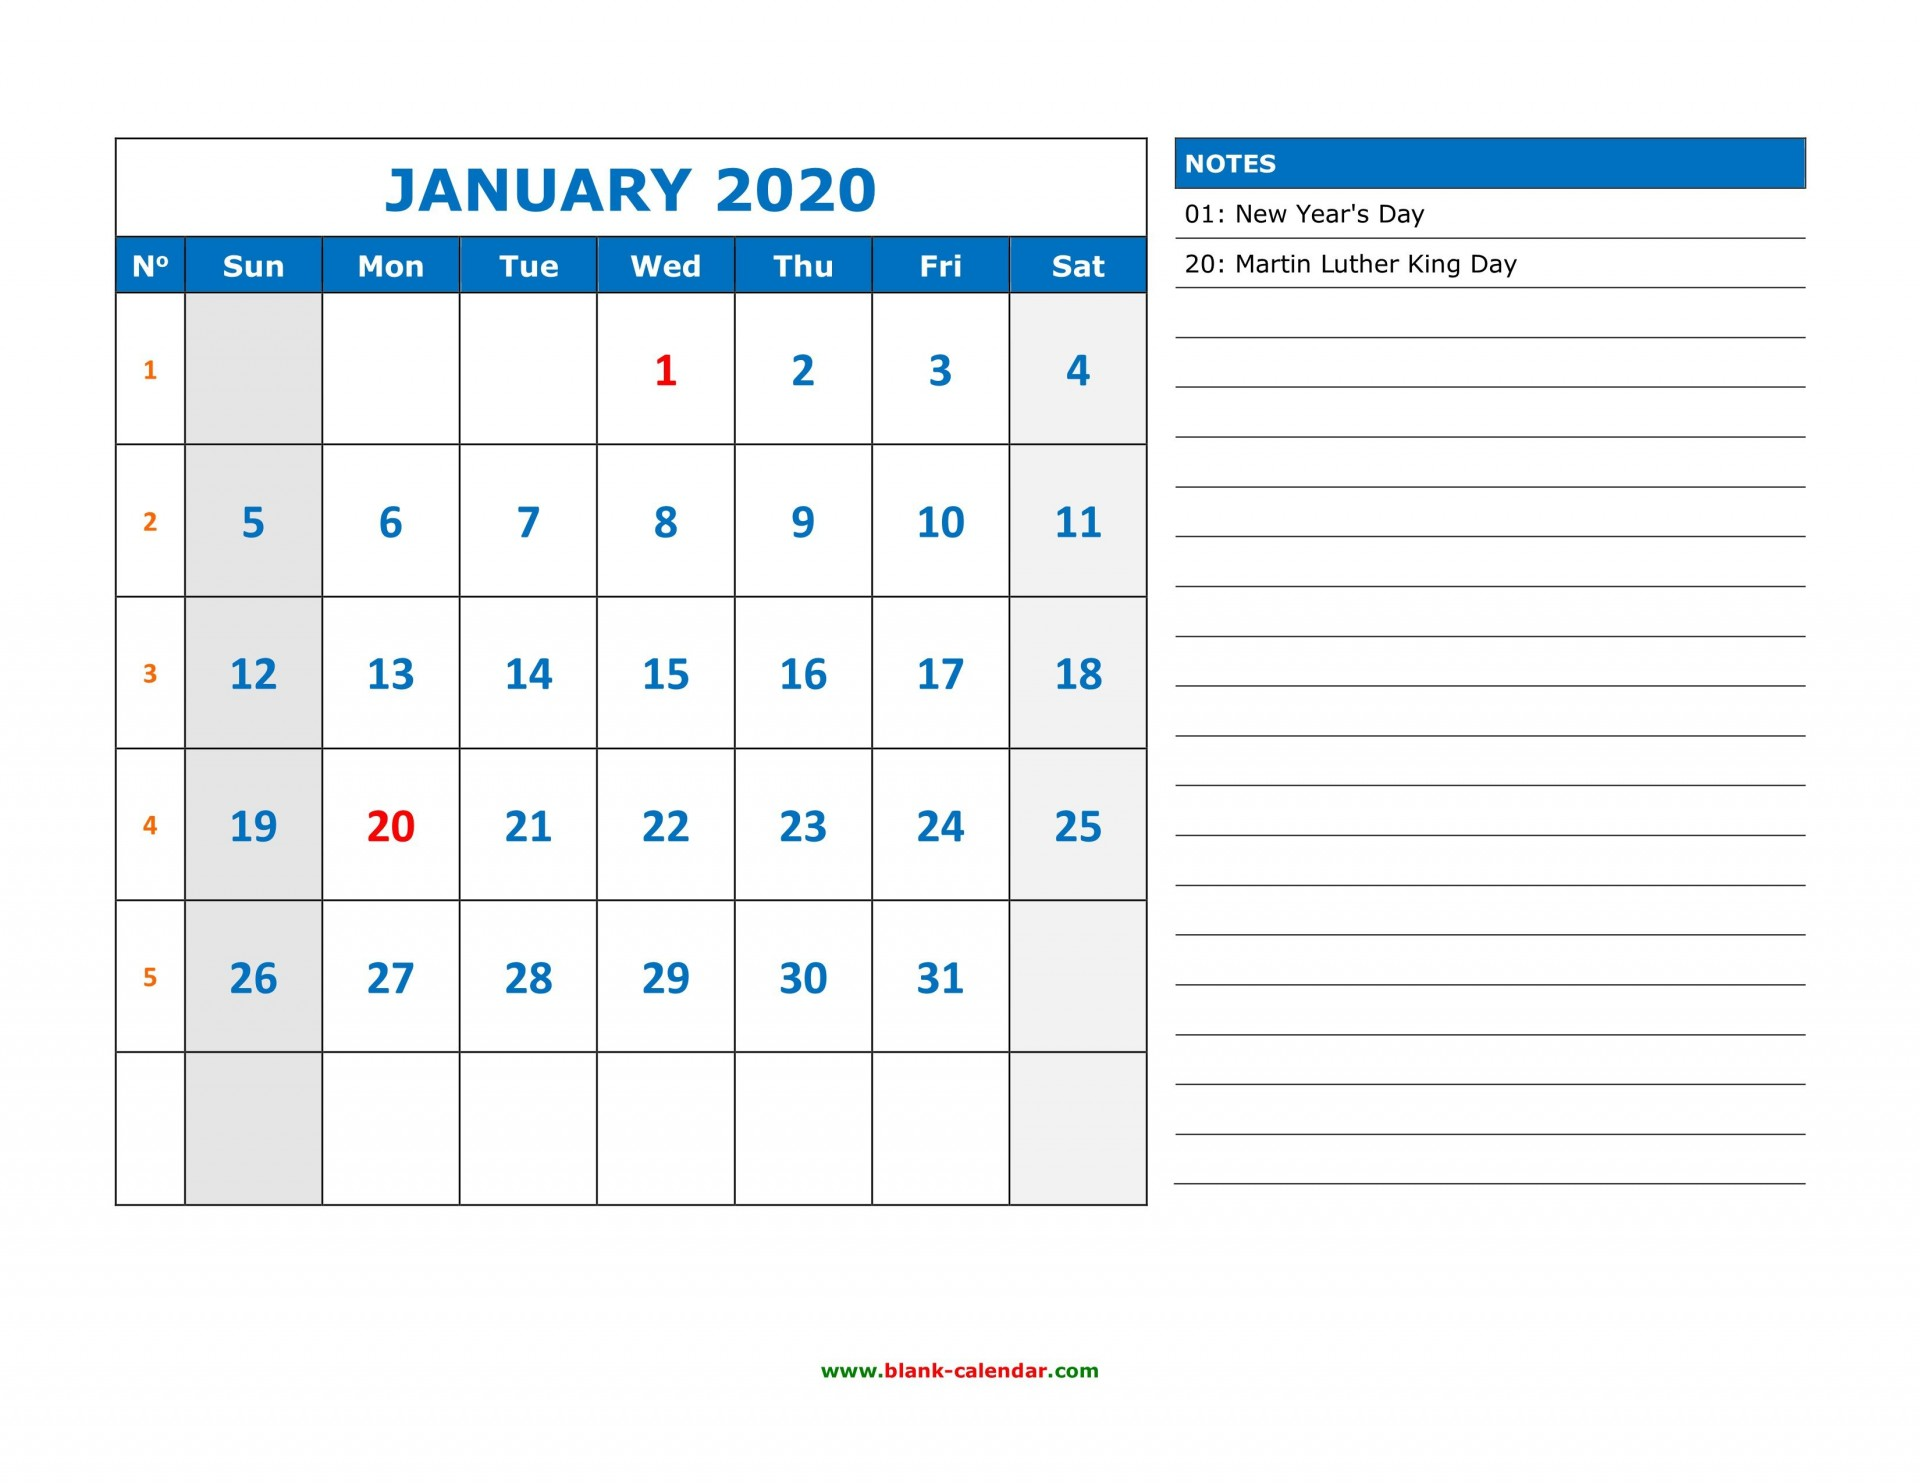 009 Imposing Monthly Appointment Calendar Template Photo  Schedule Excel Free 20201920